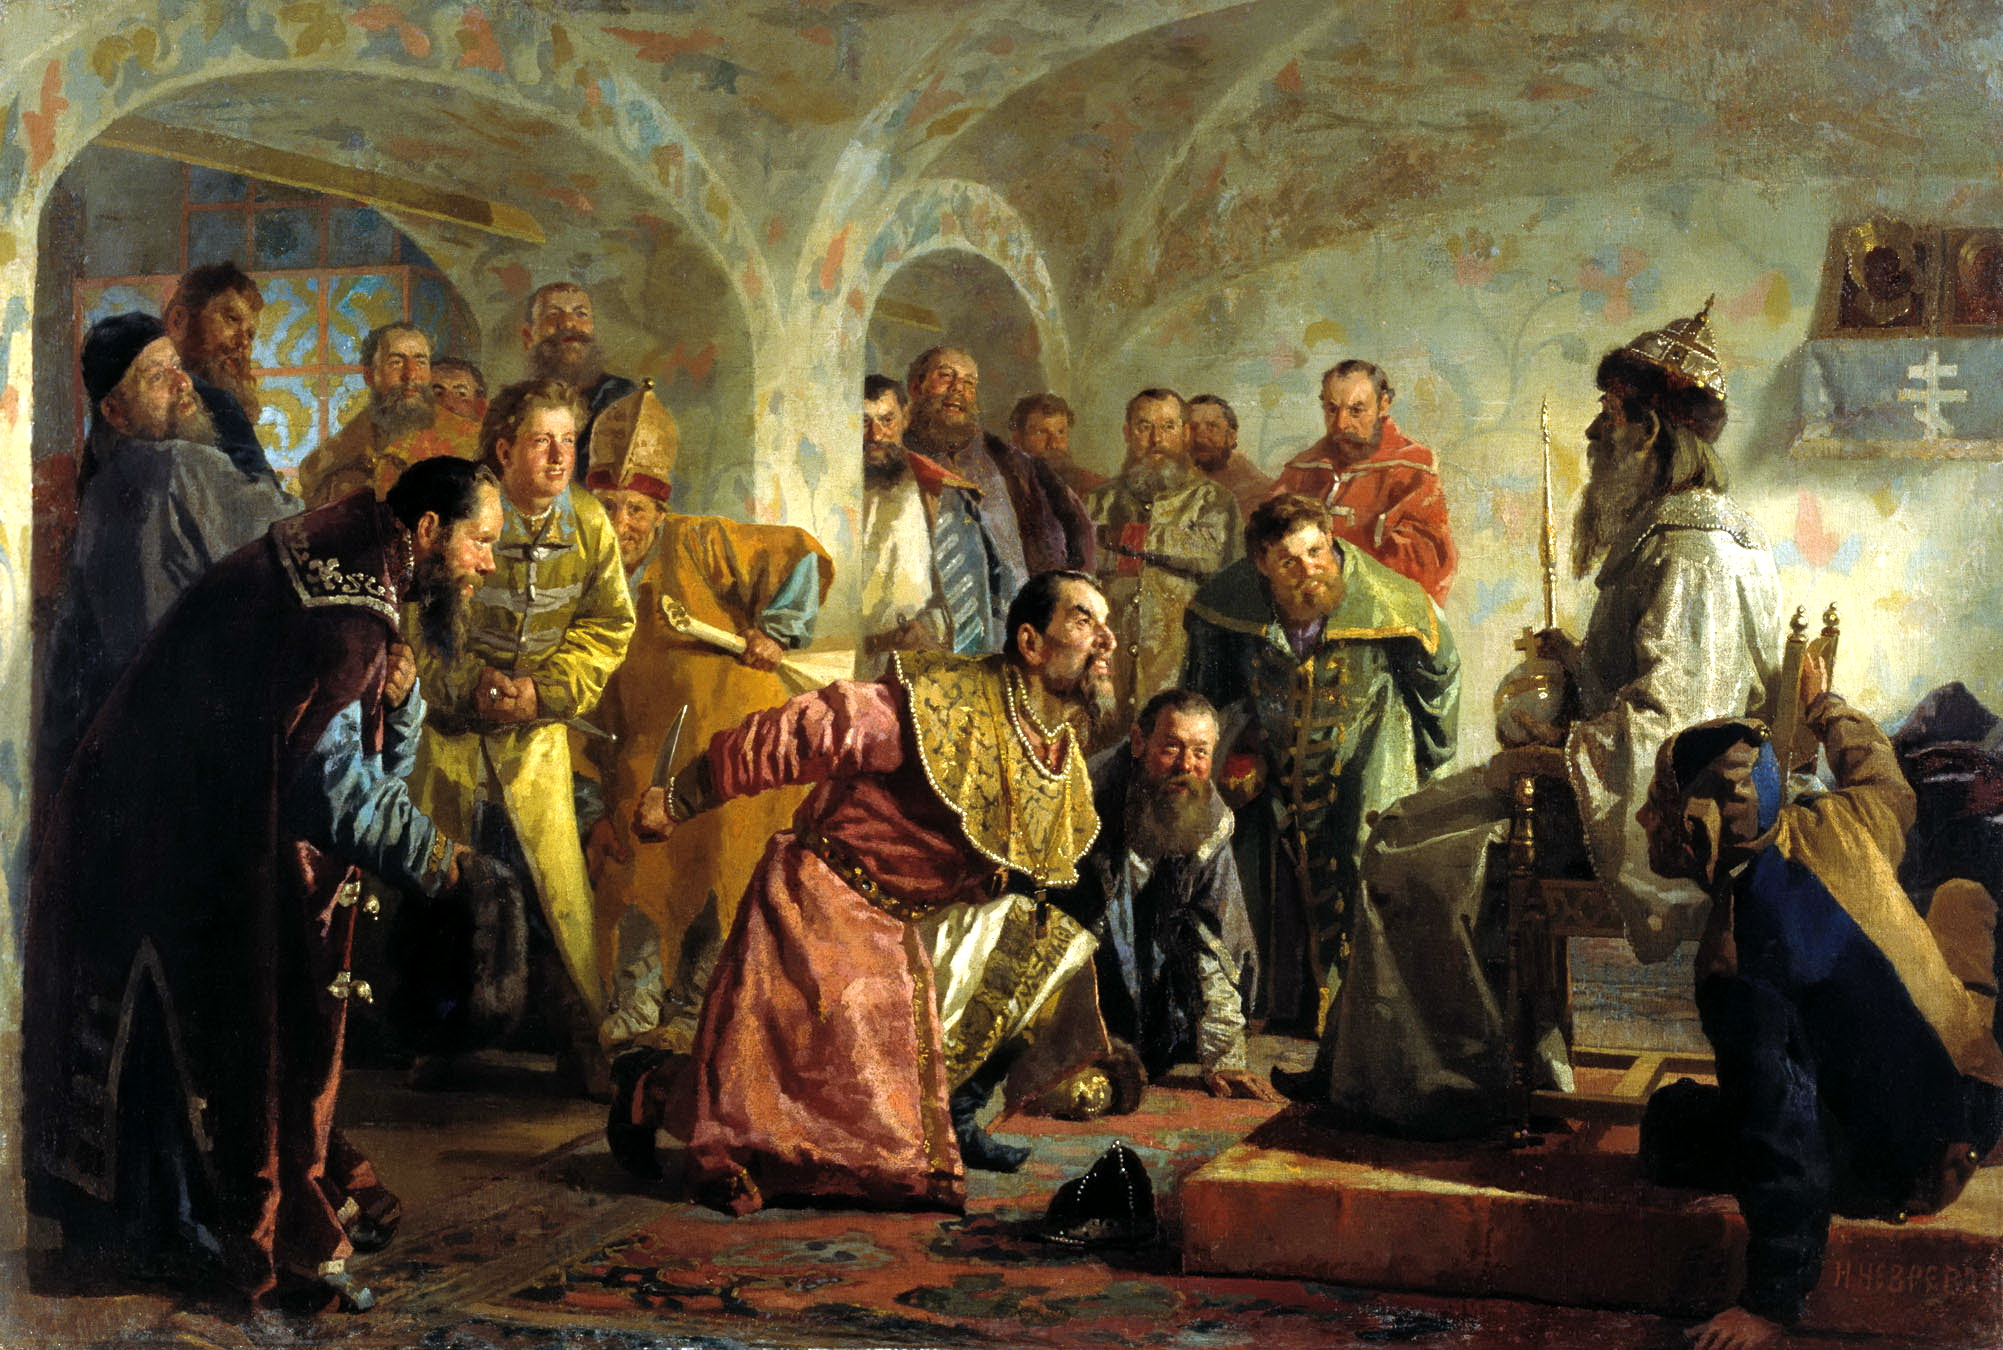 The Oprichniki by Nikolai Nevrev. The painting shows the last minutes of boyarin Feodorov, arrested for treason. To mock his alleged ambitions on the Tsar's title, the nobleman was given Tsar's regalia before execution.